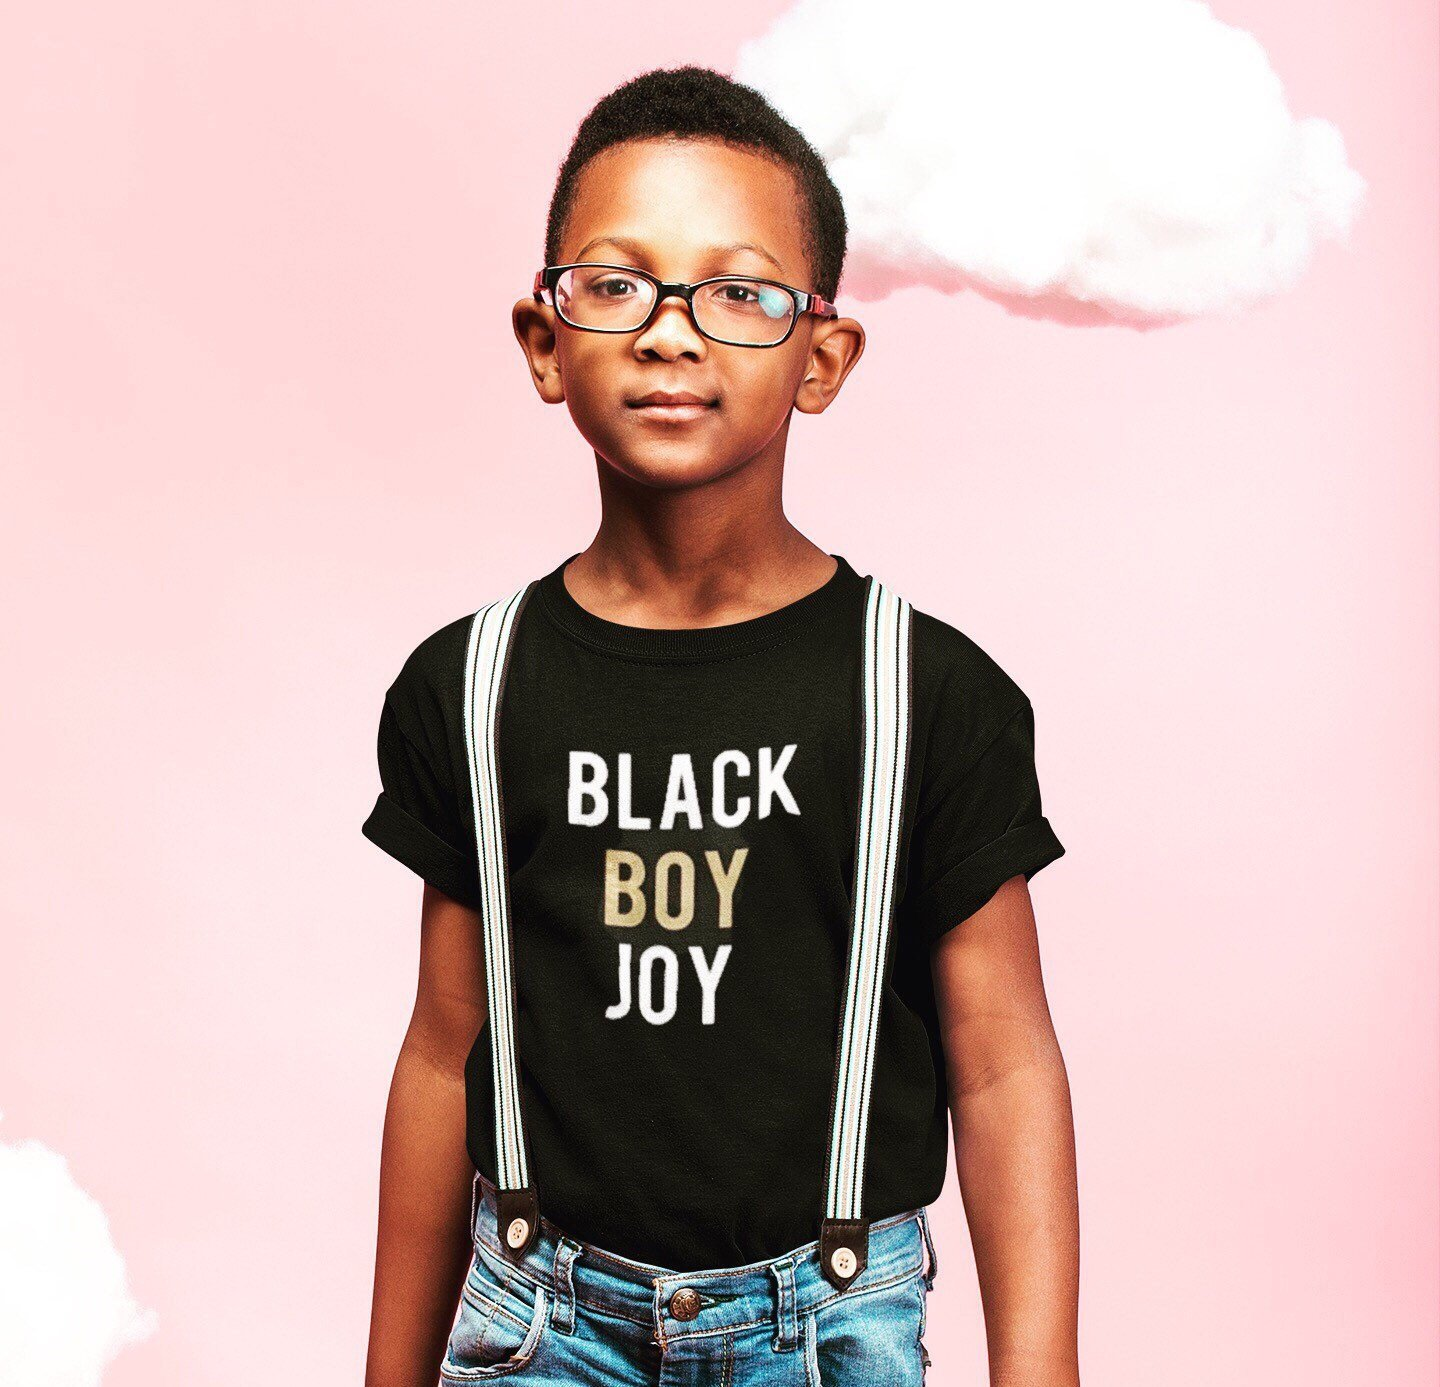 Meaningful gifts for kids: Black Boy Joy shirt or daddy and me set